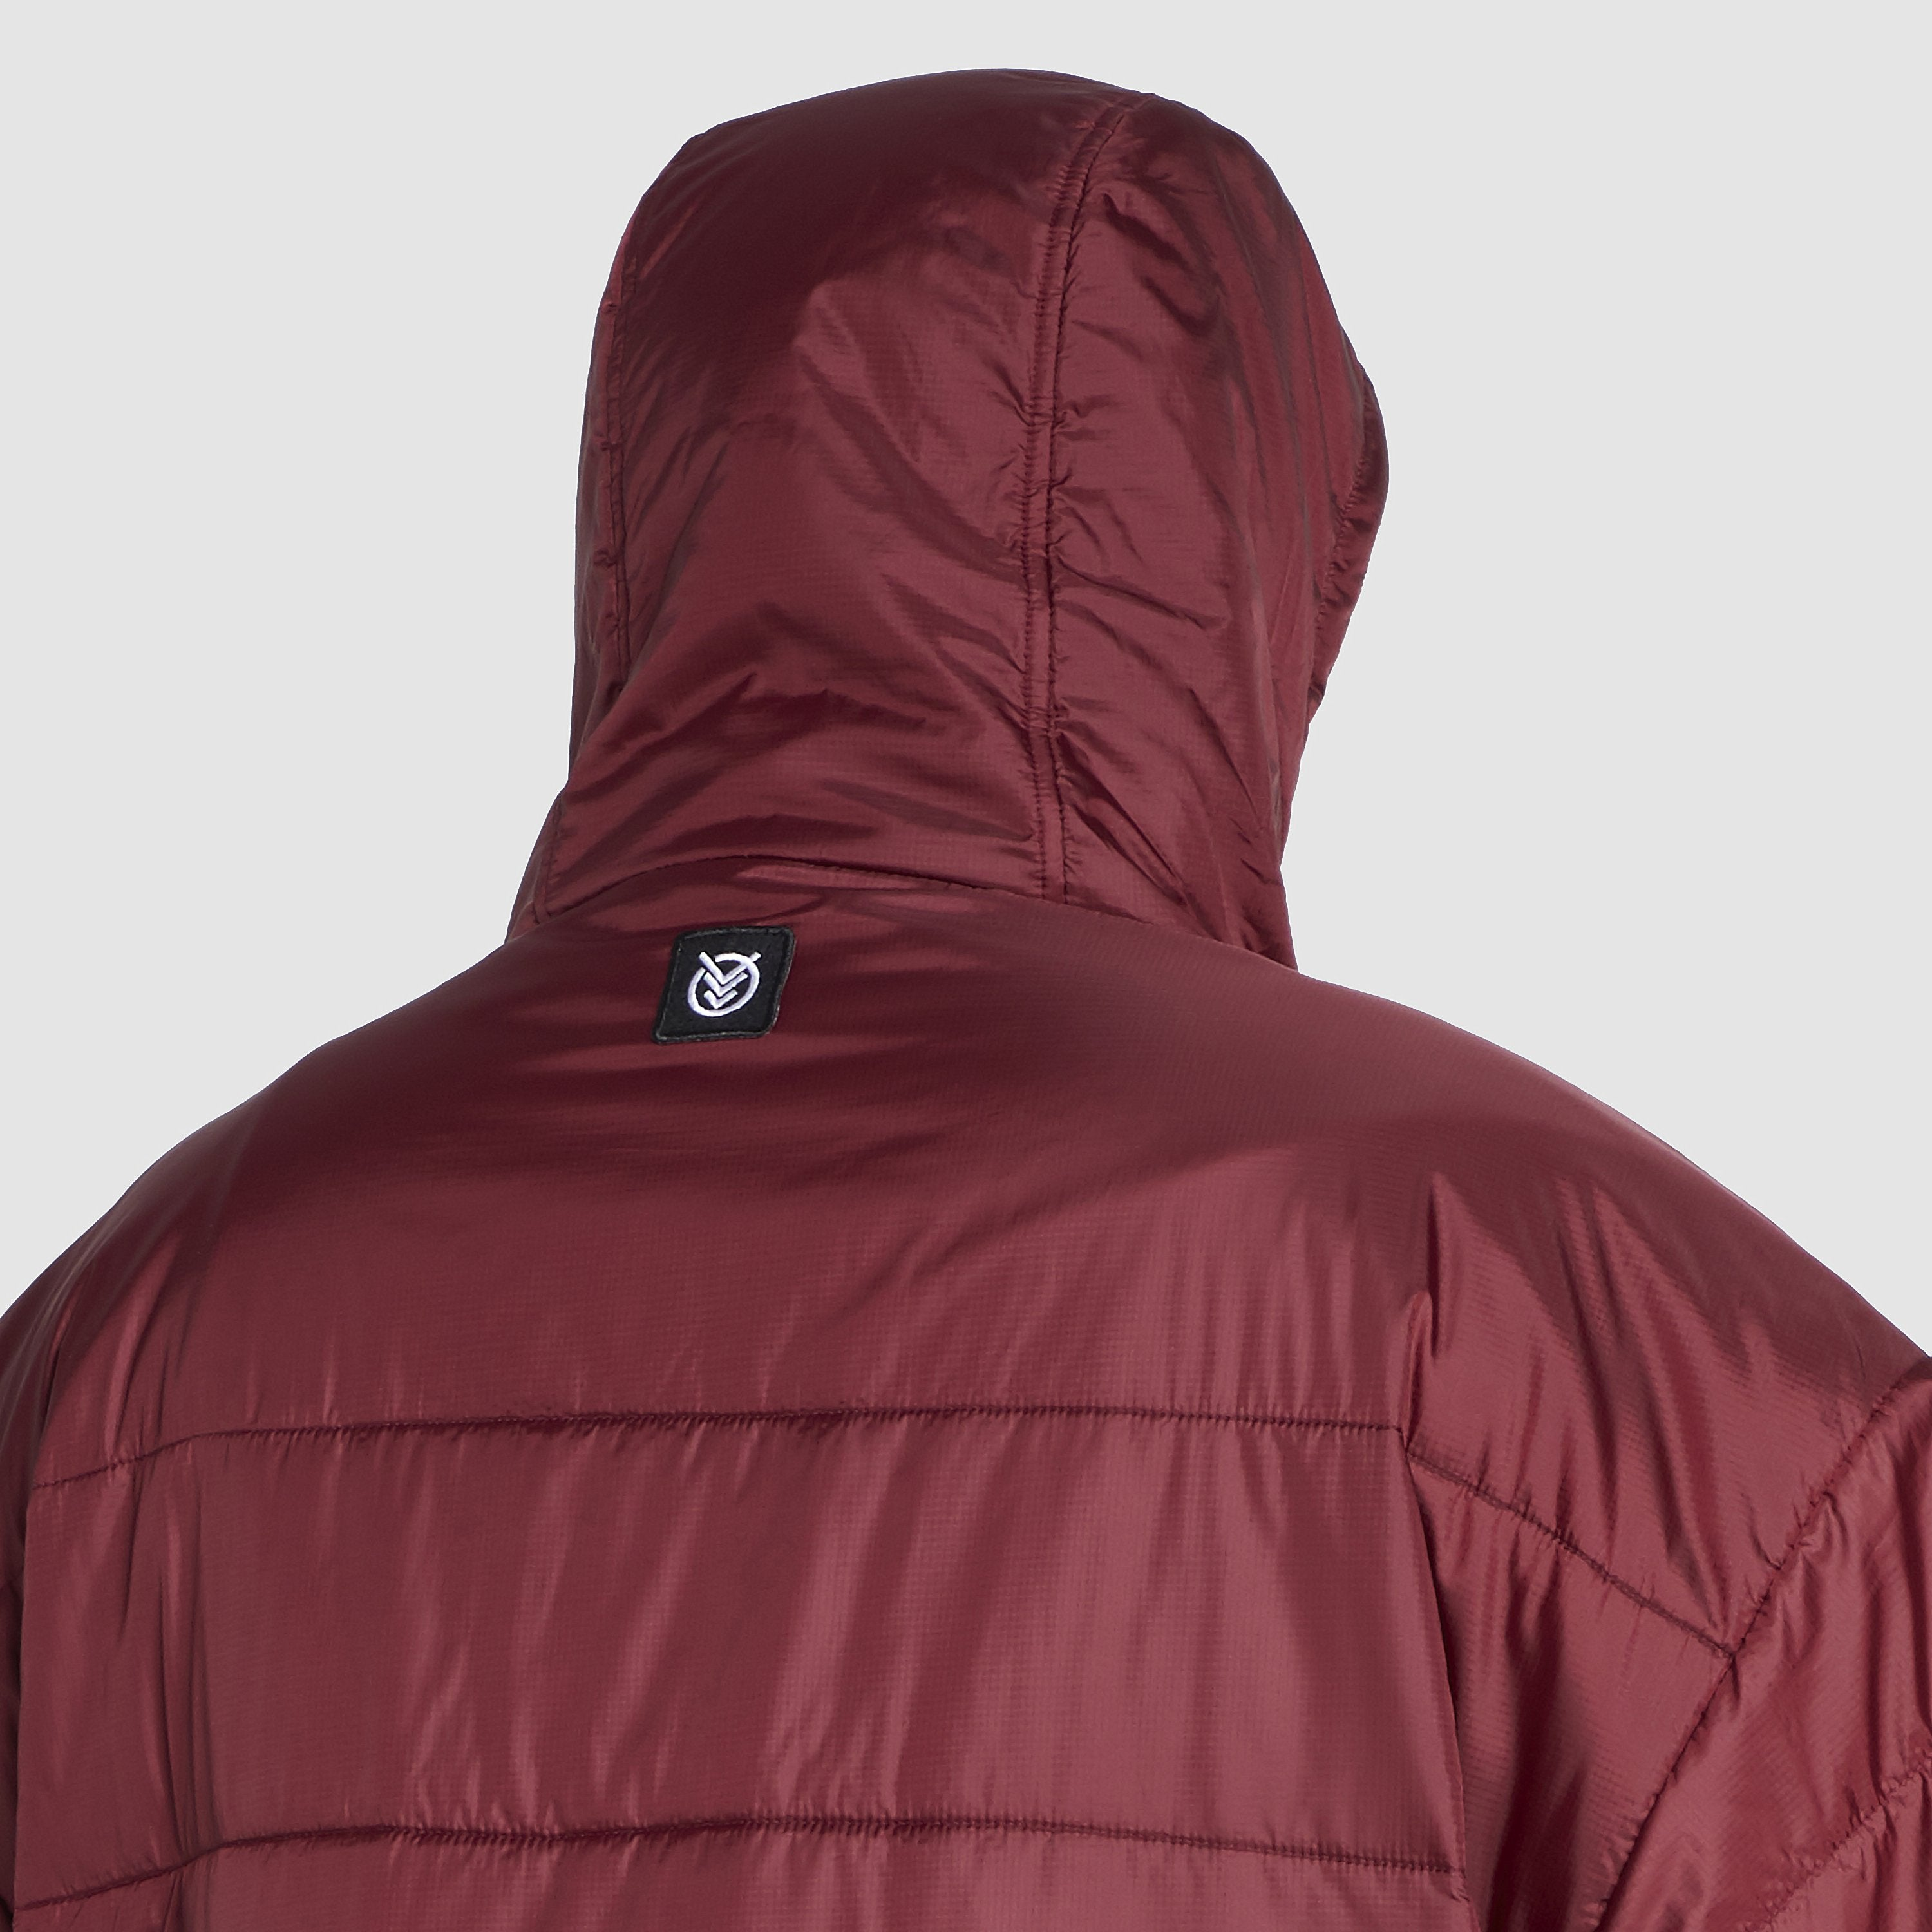 Voited Insulated Outdoor Poncho - Oxblood image 7